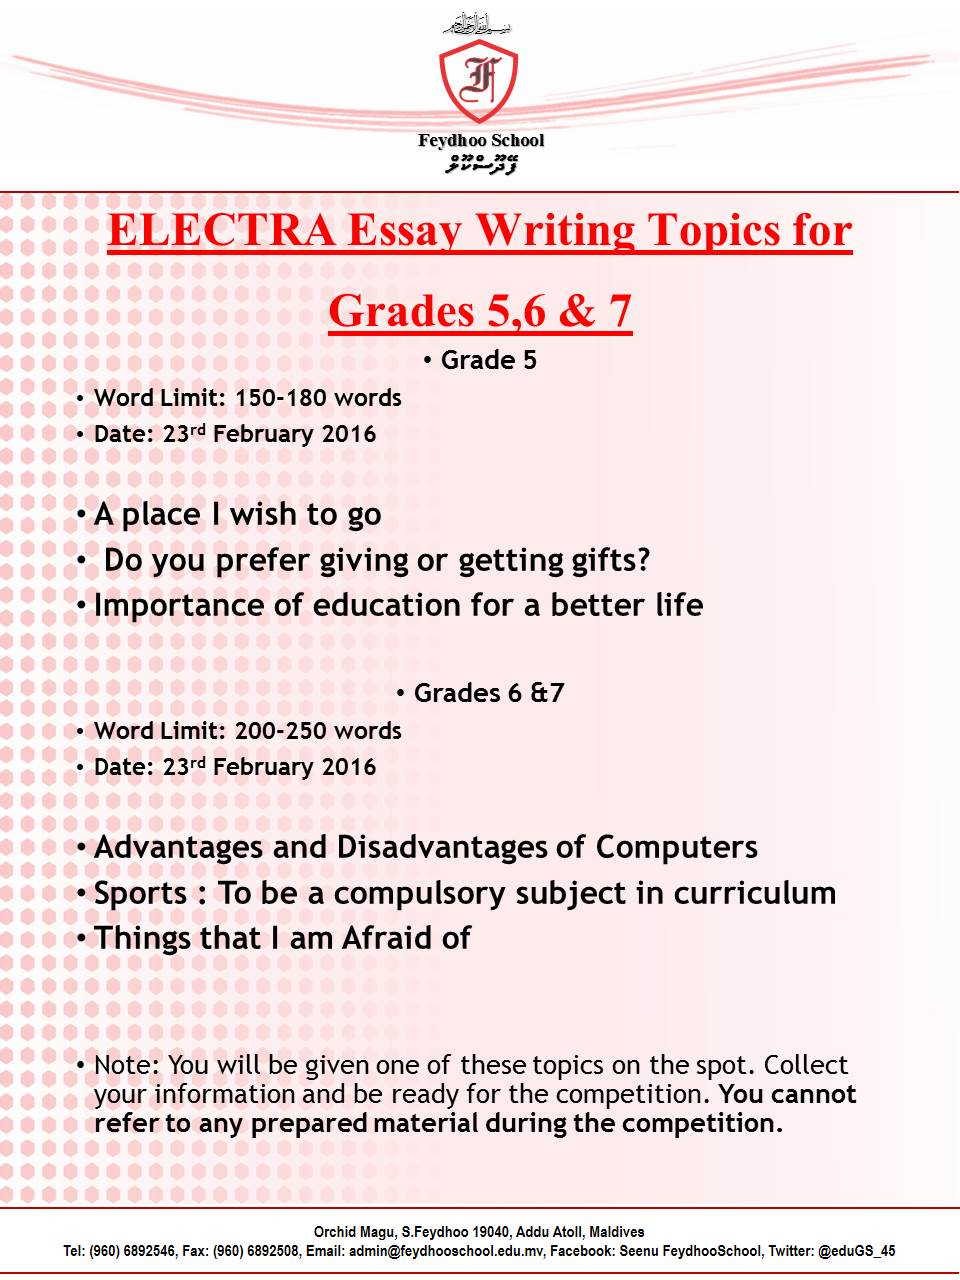 003 Essay Example Topics For Grade Marvelous 5 English Writing Tips Full